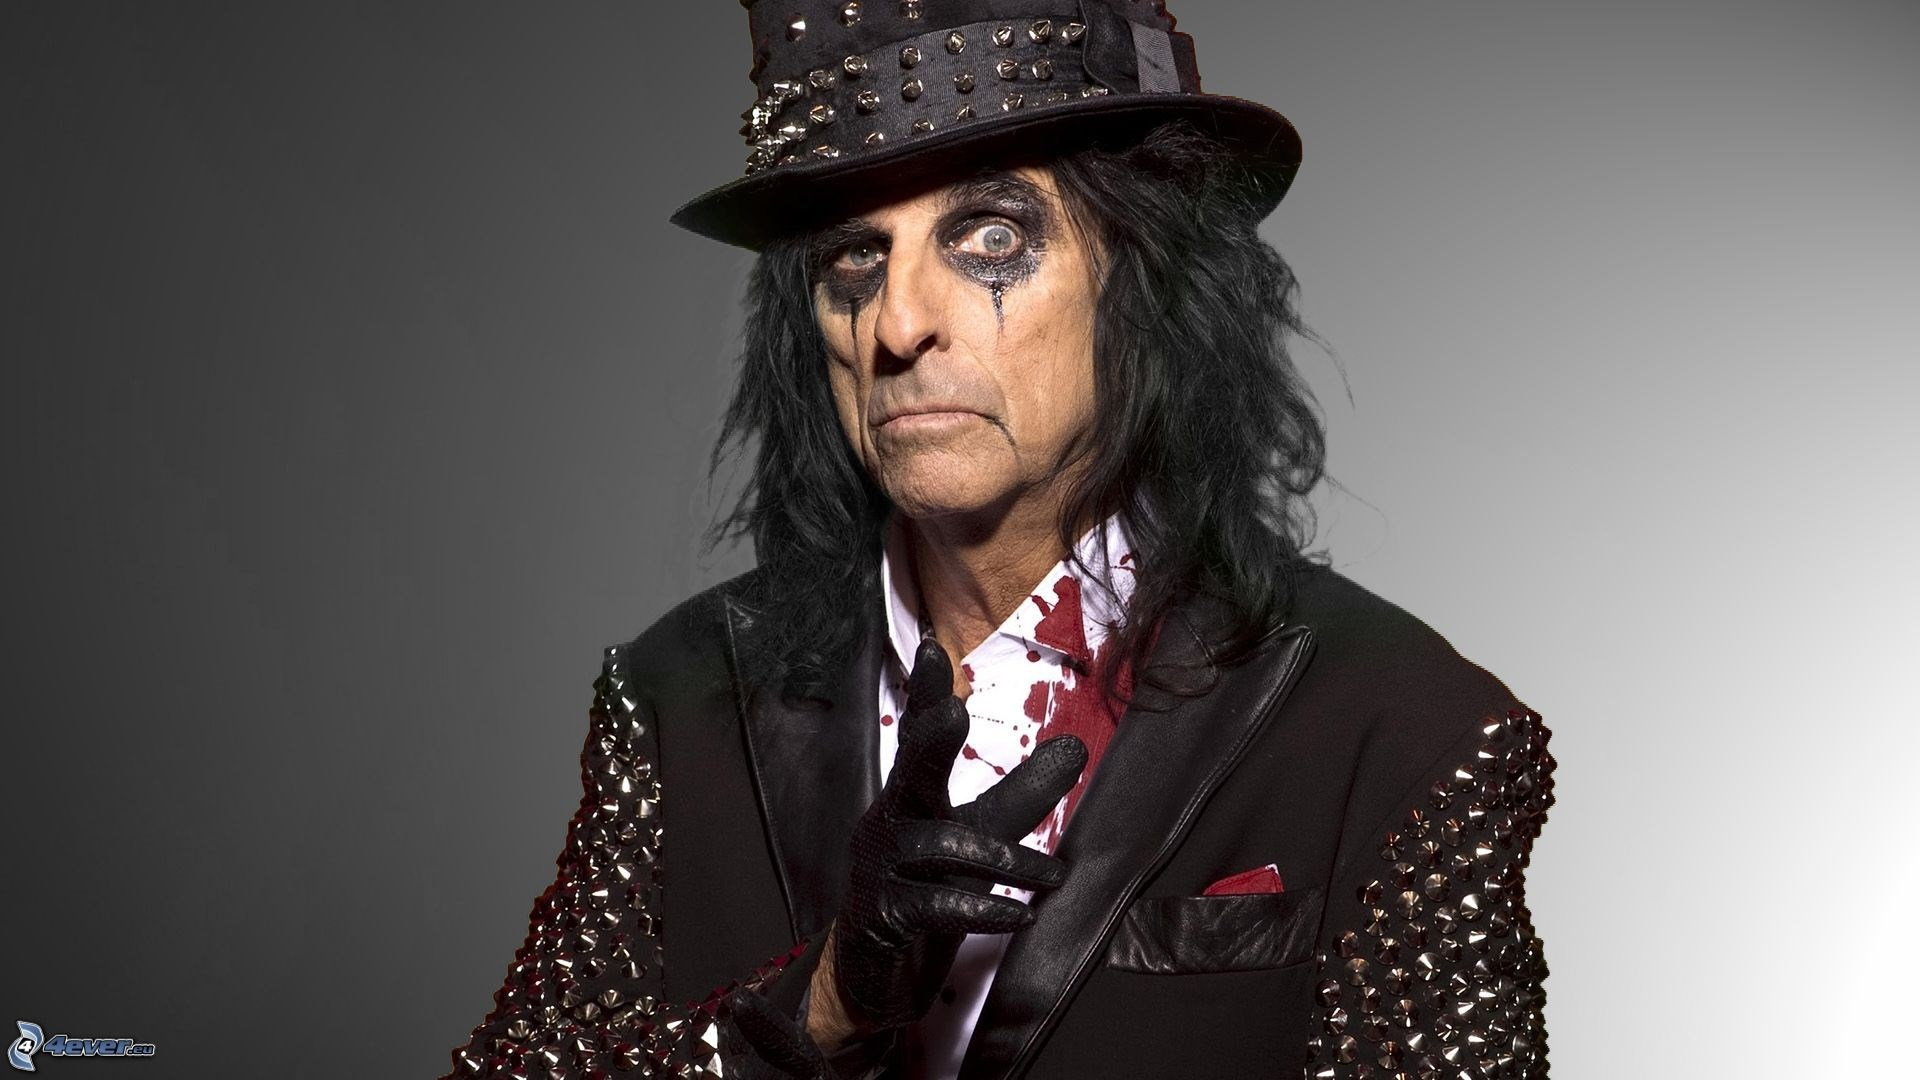 free-high-resolution-alice-cooper-1920x1080-kB-wallpaper-wp3605866